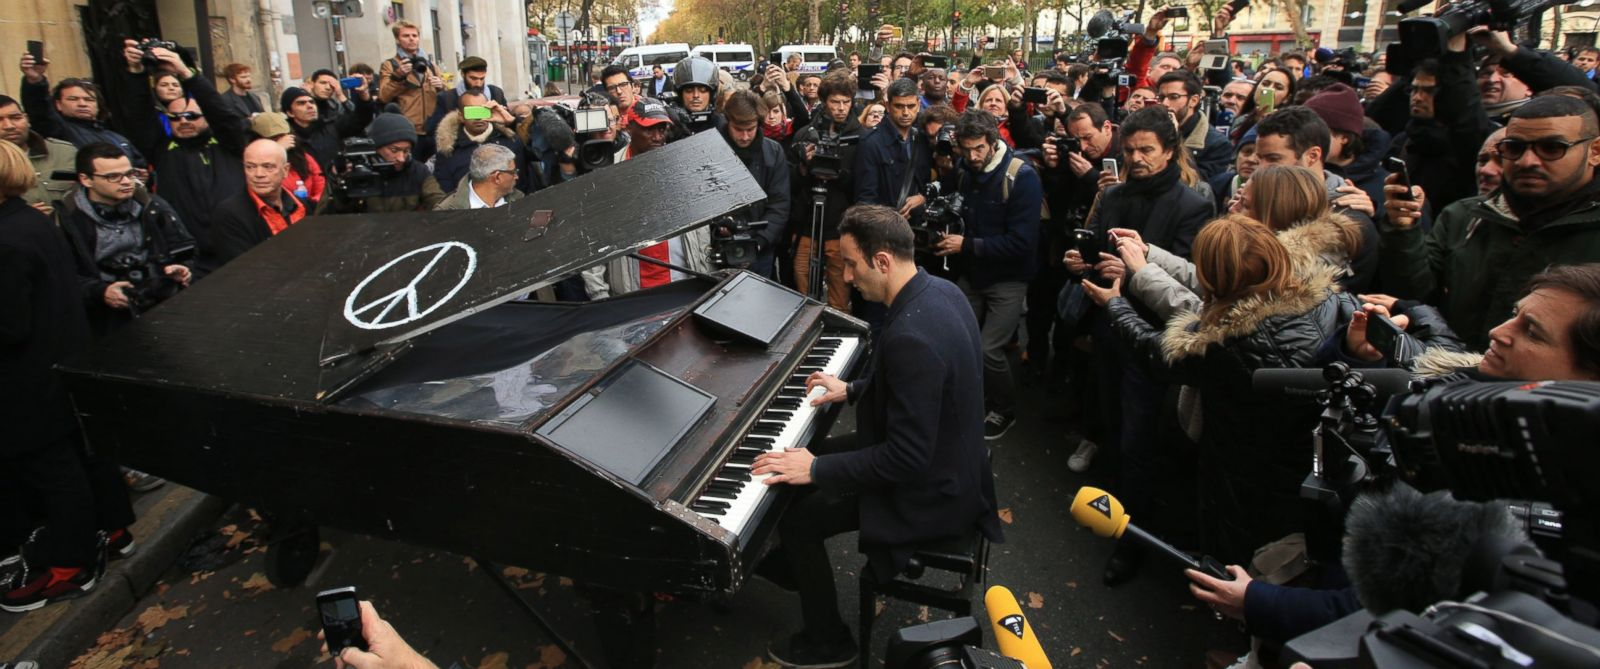 PHOTO: An unnamed man brings his portable grand piano and plays John Lennons Imagine outside the Bataclan concert hall, Nov. 14, 2015 in Paris.